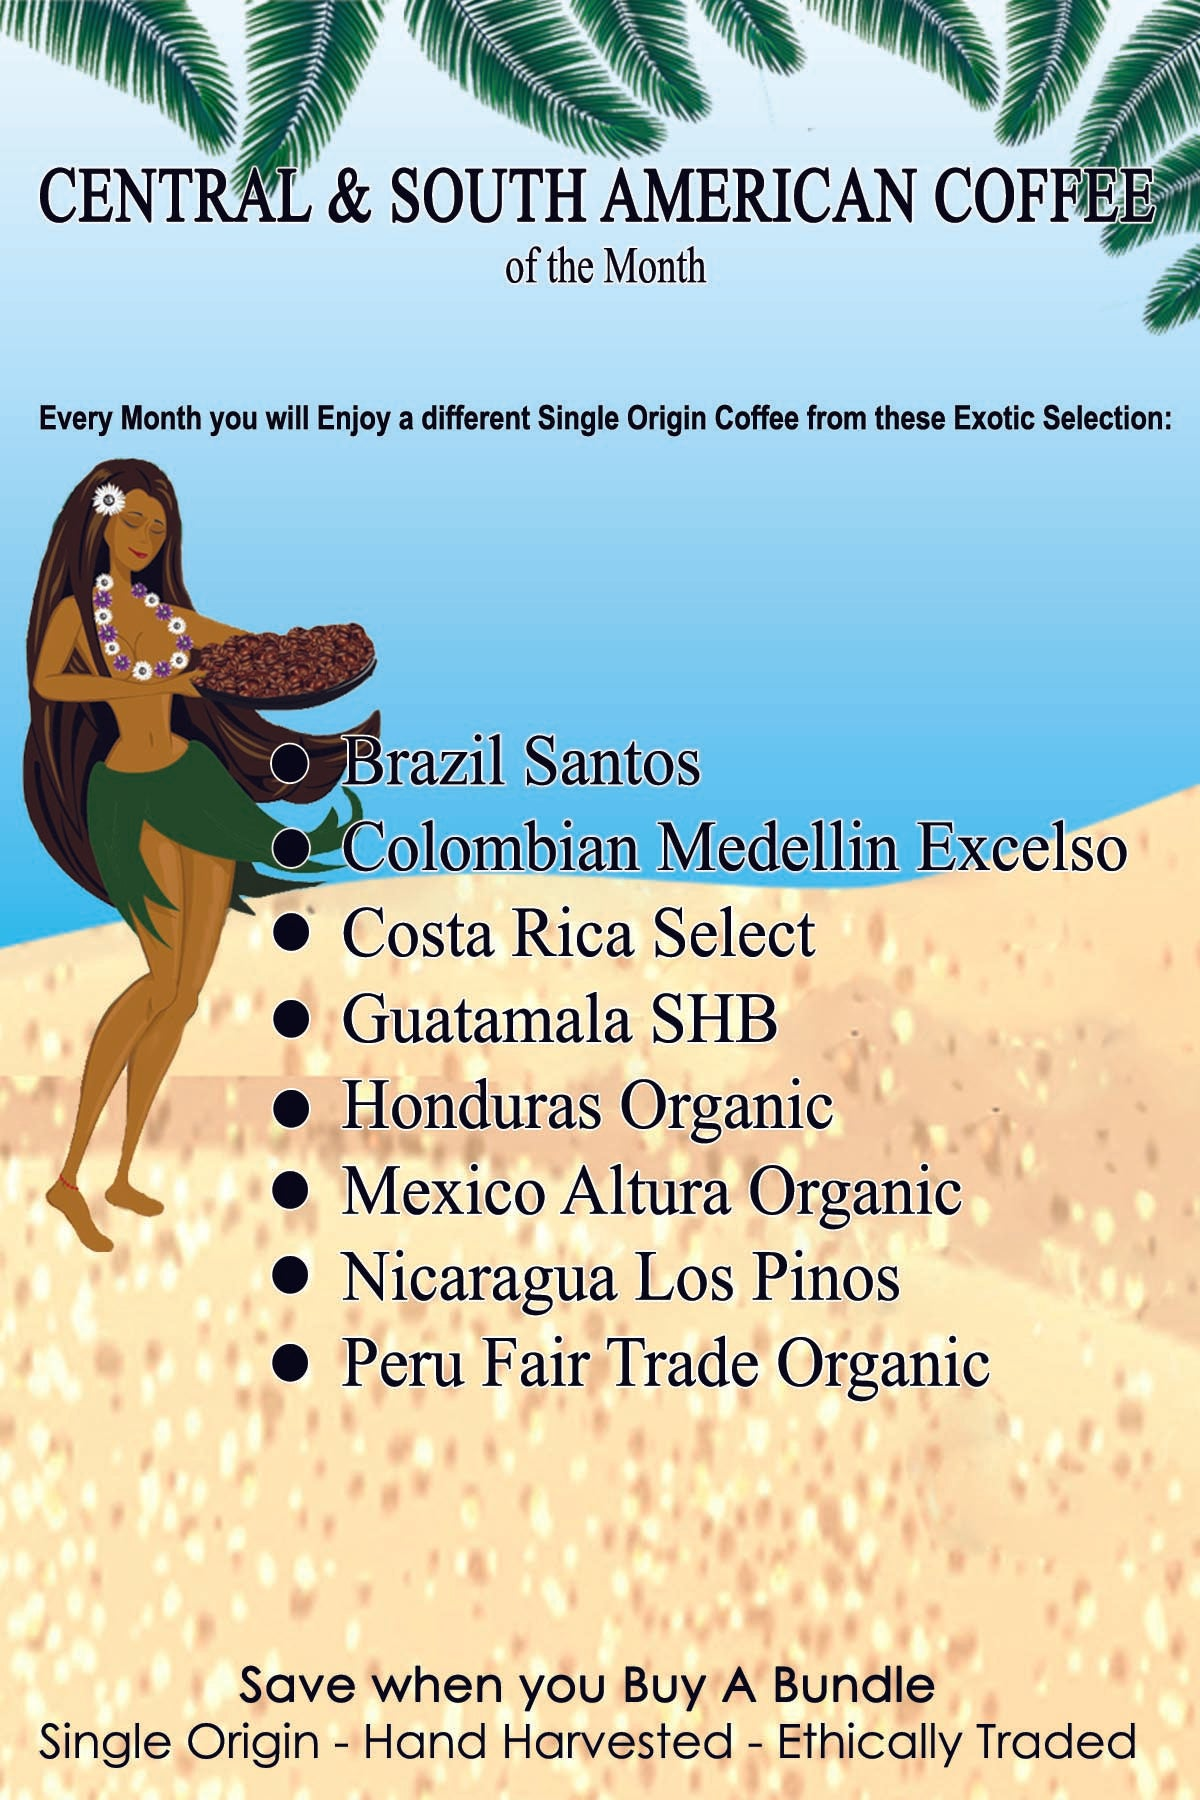 Central & South American Coffee of The Month